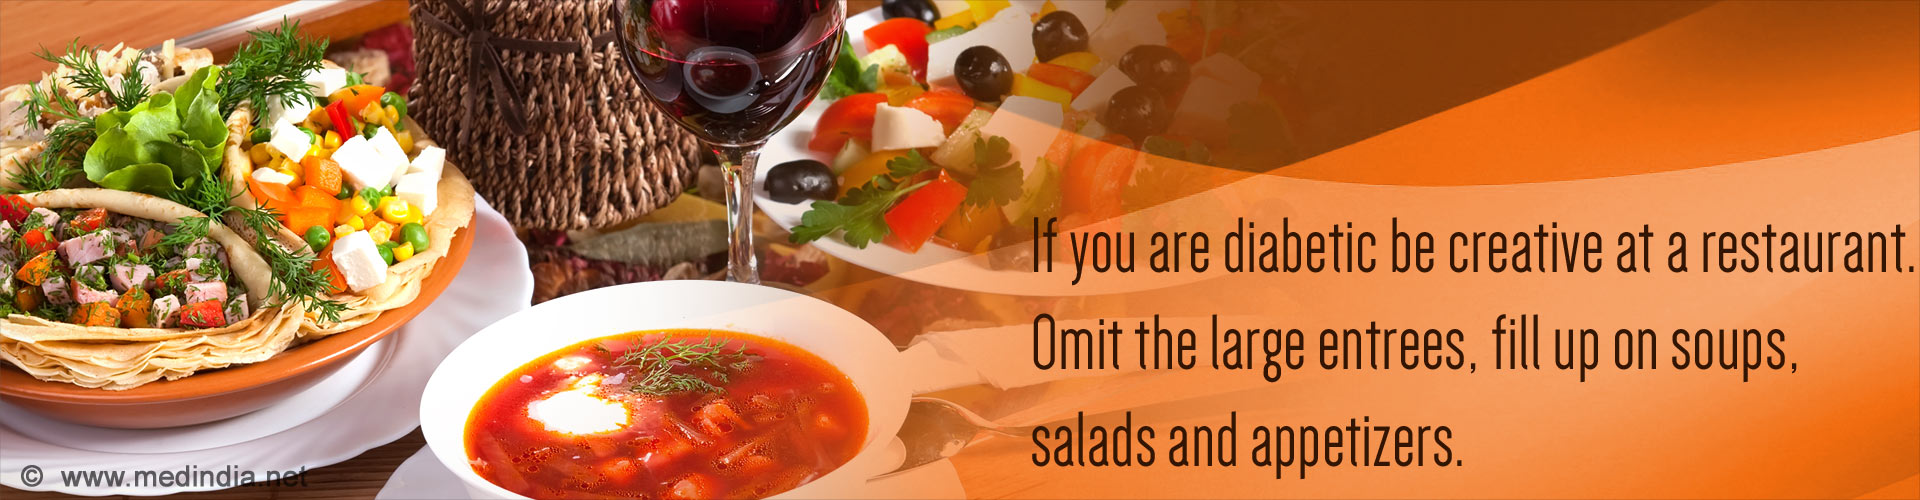 If you are diabetic be creative at a restaurant. Omit the large entrees, fill up on soups, salads and appetizers.